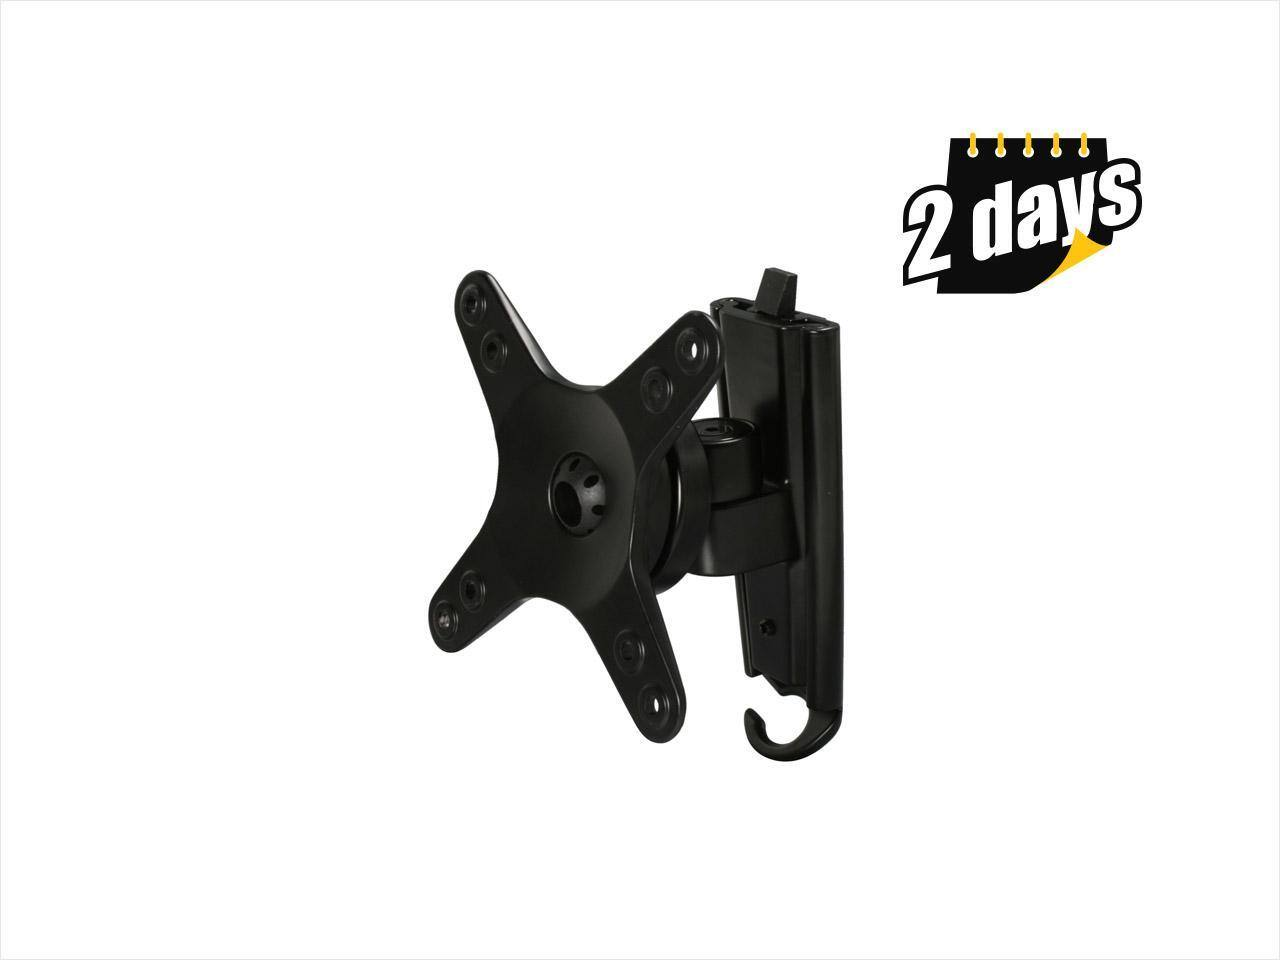 """Rosewill RMS-MT2790 13"""" - 24"""" LCD LED TV Tilt / Swivel Wall Mount $1AR @NF"""